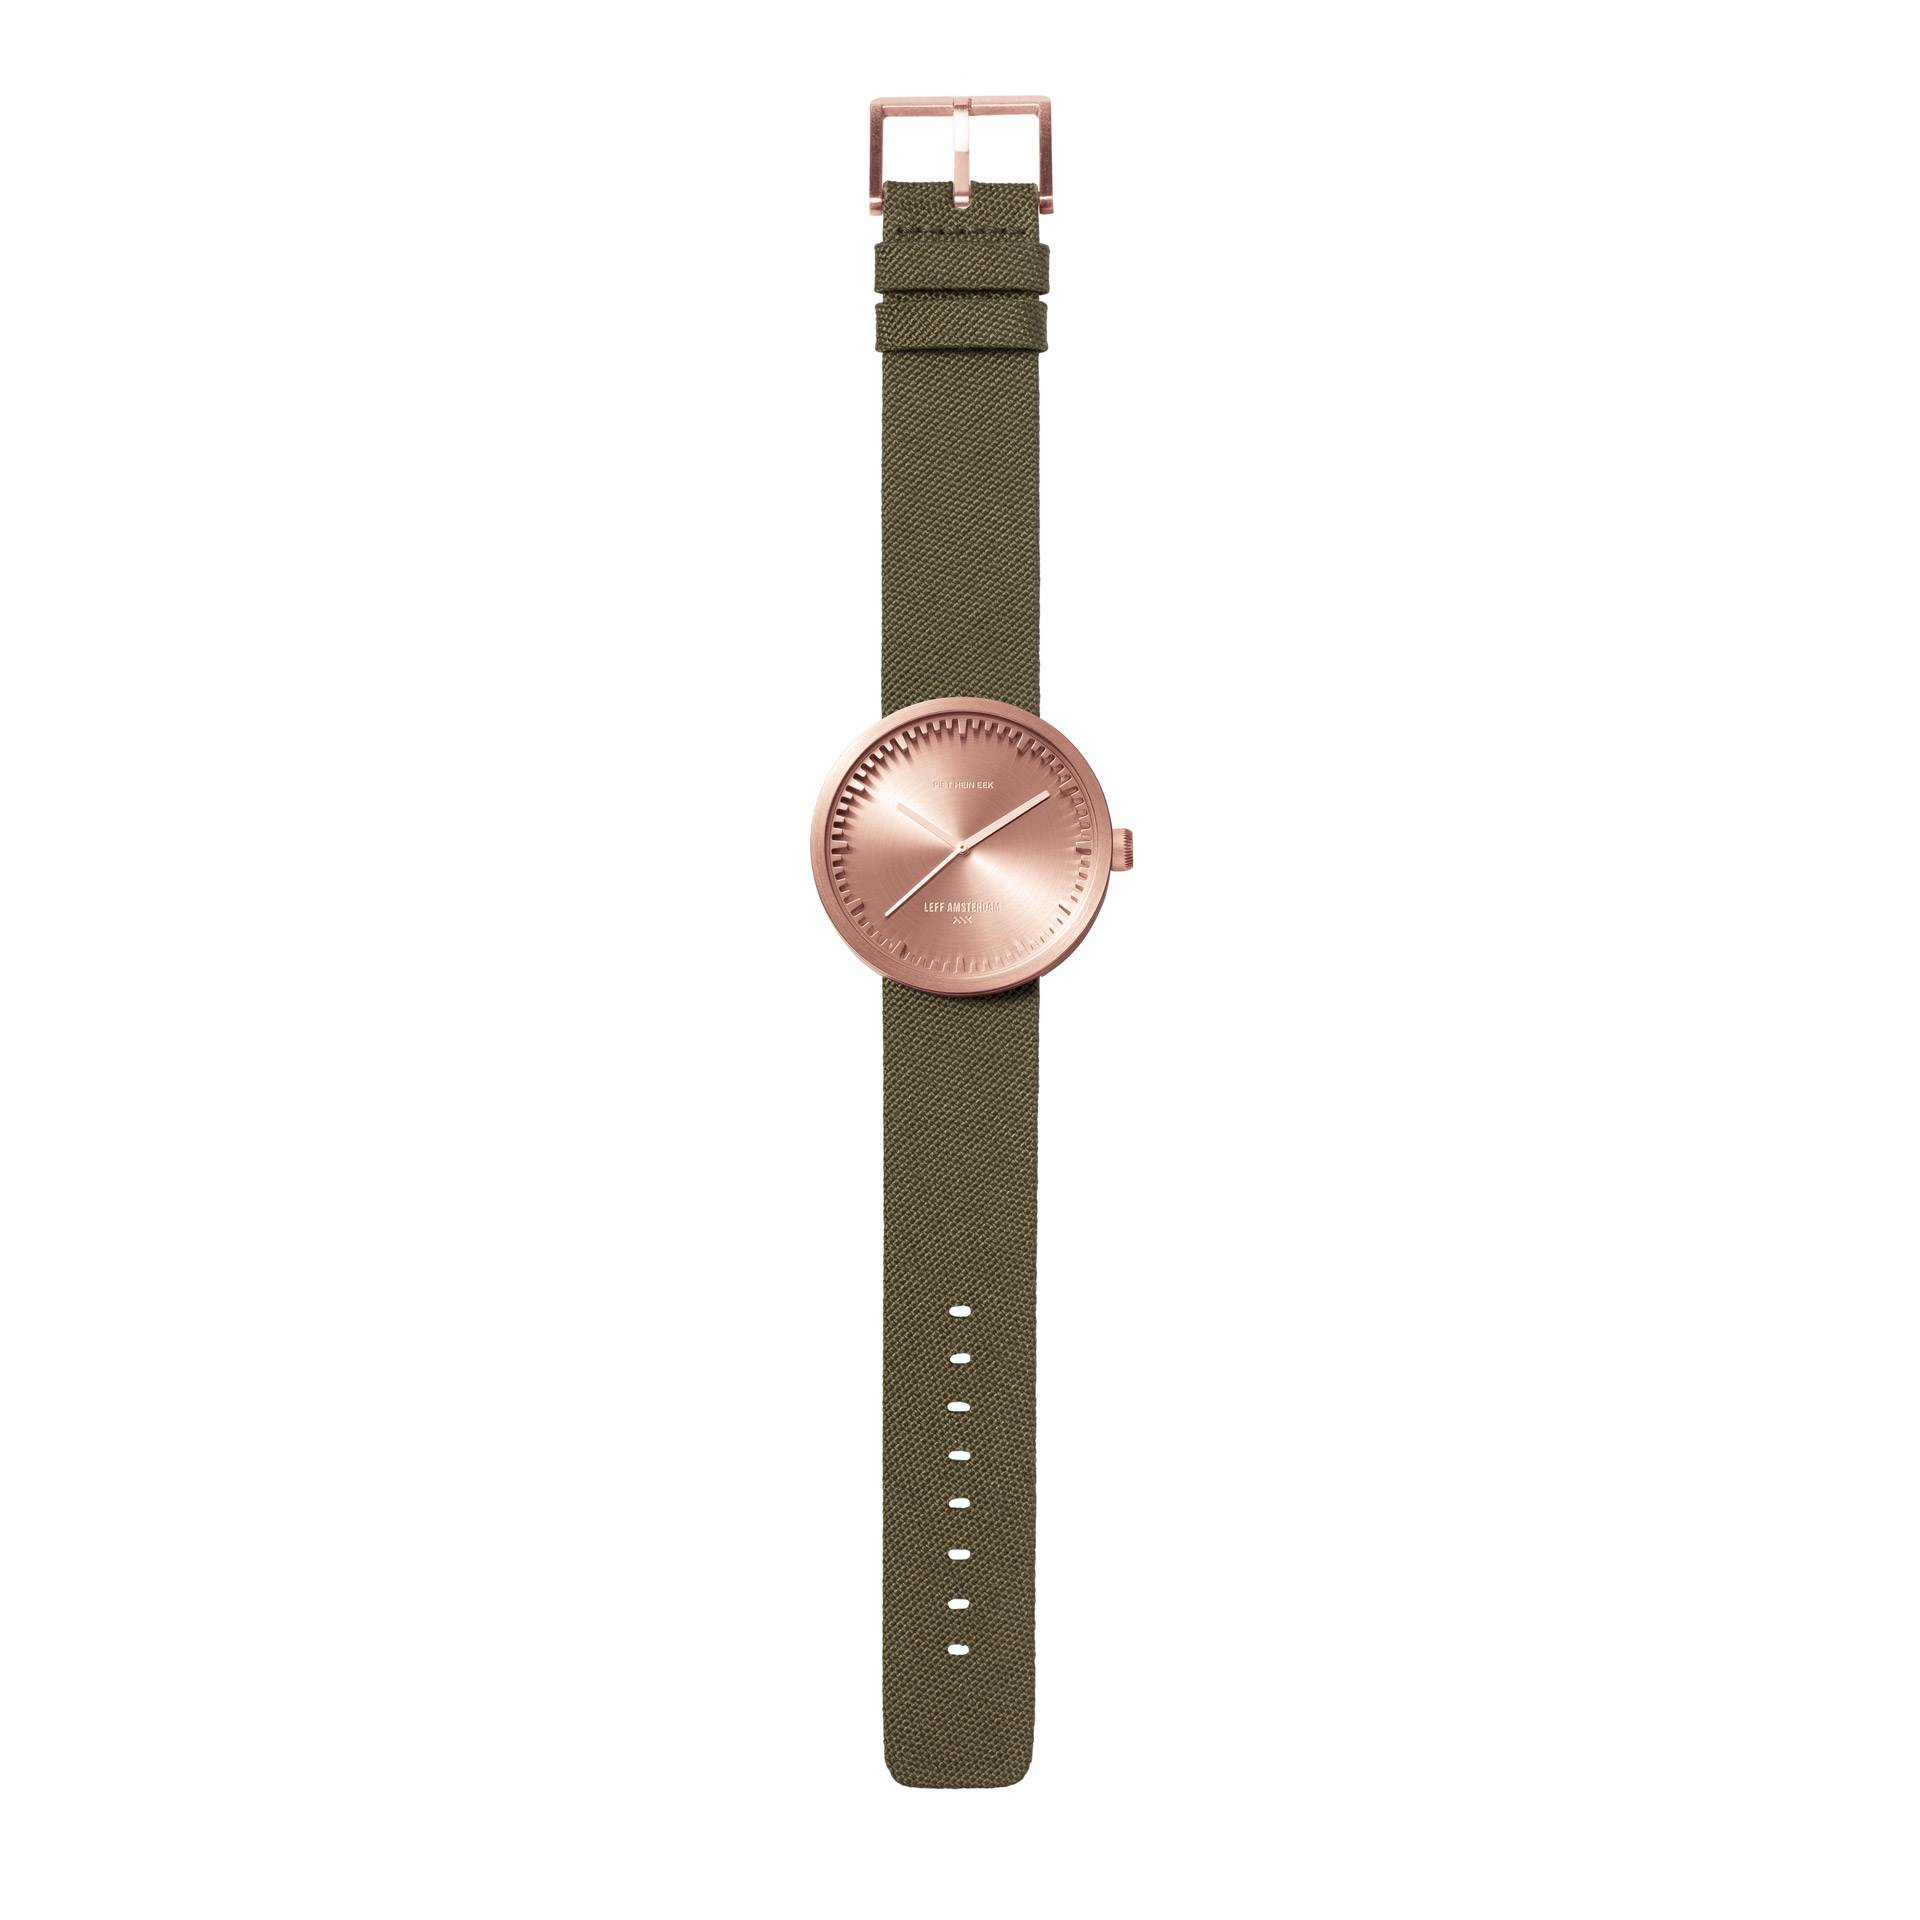 D38 rose glod case sand green cordura strap tube watch leff amsterdam design by piet hein eek